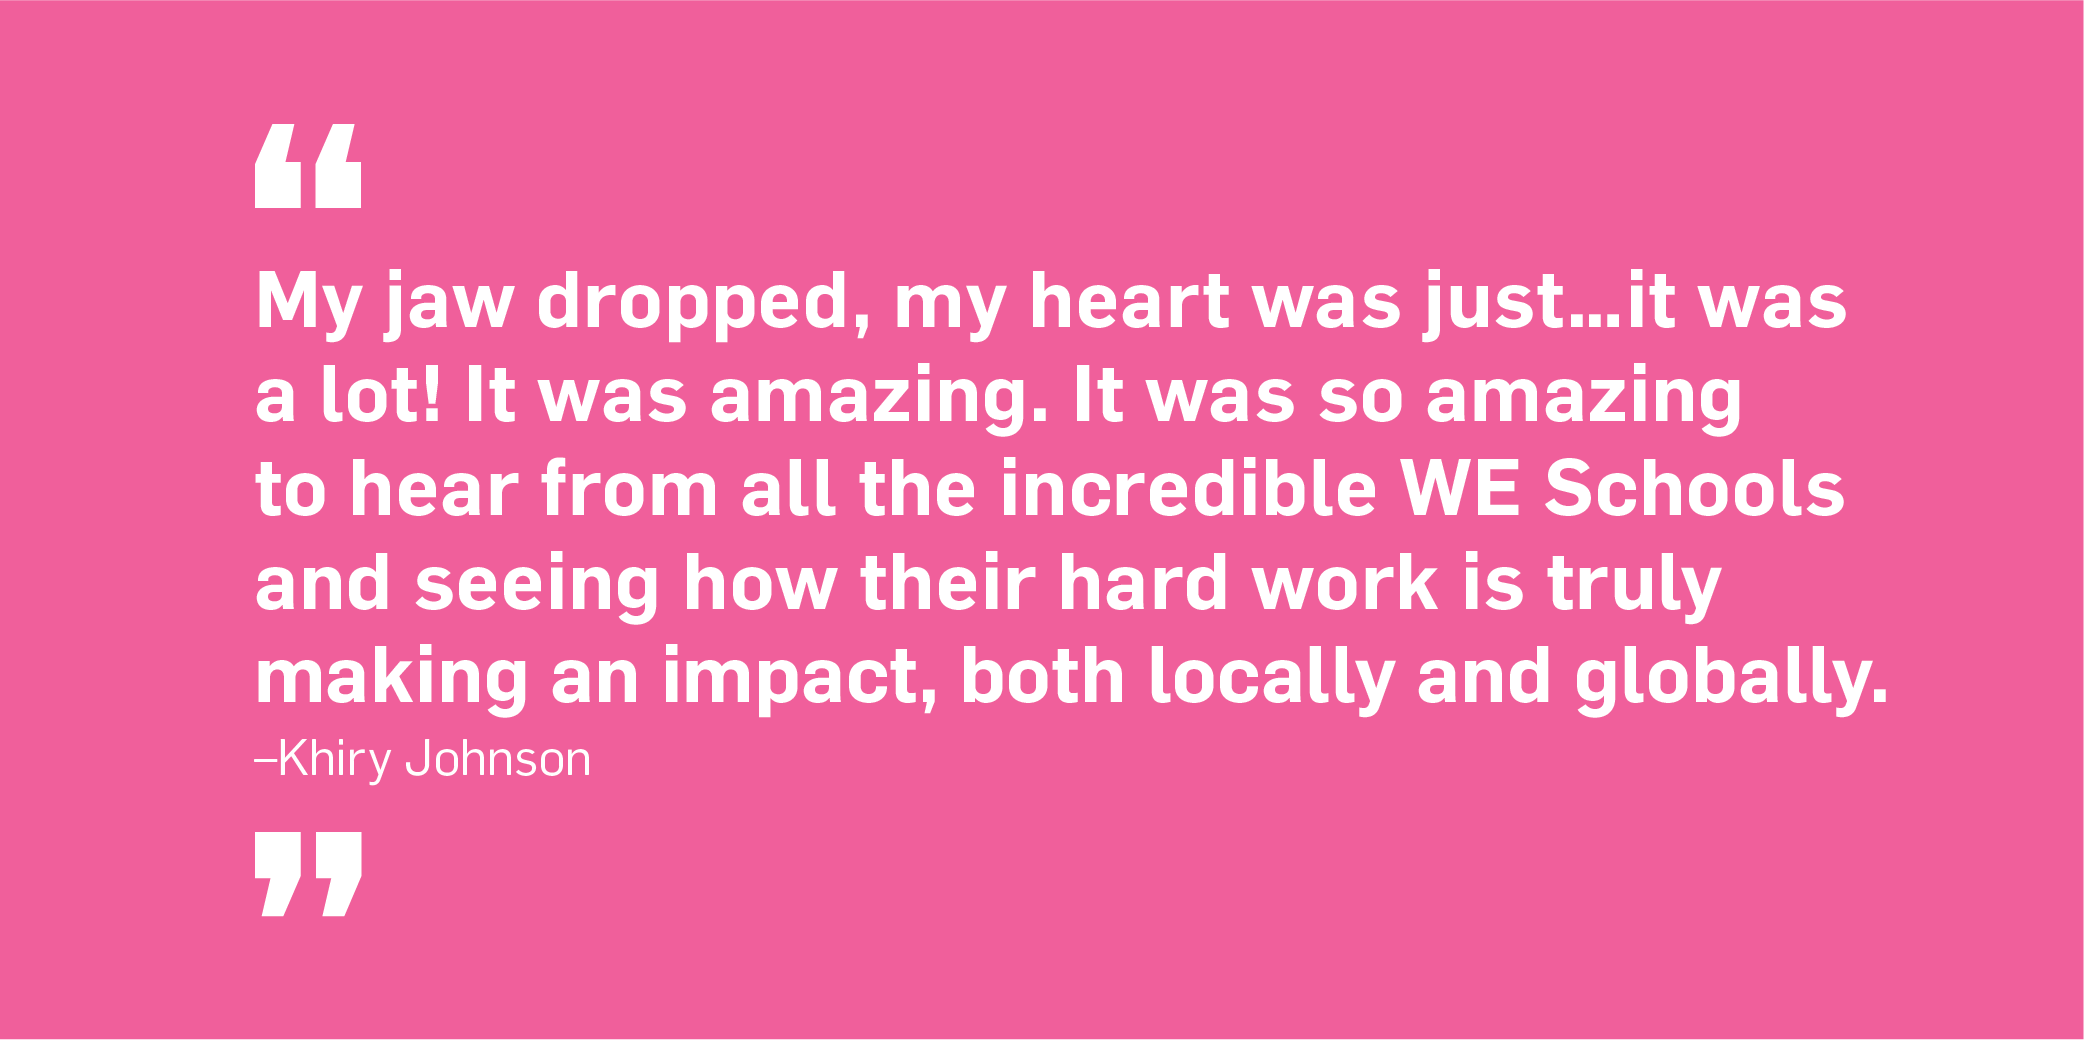 Quote. My jaw dropped, my heart was just...it was a lot! It was amazing. It was so amazing to hear from all the incredible WE Schools and seeing how their hard work is truly making an impact, both locally and globally. Unquote. Khiry Johnson